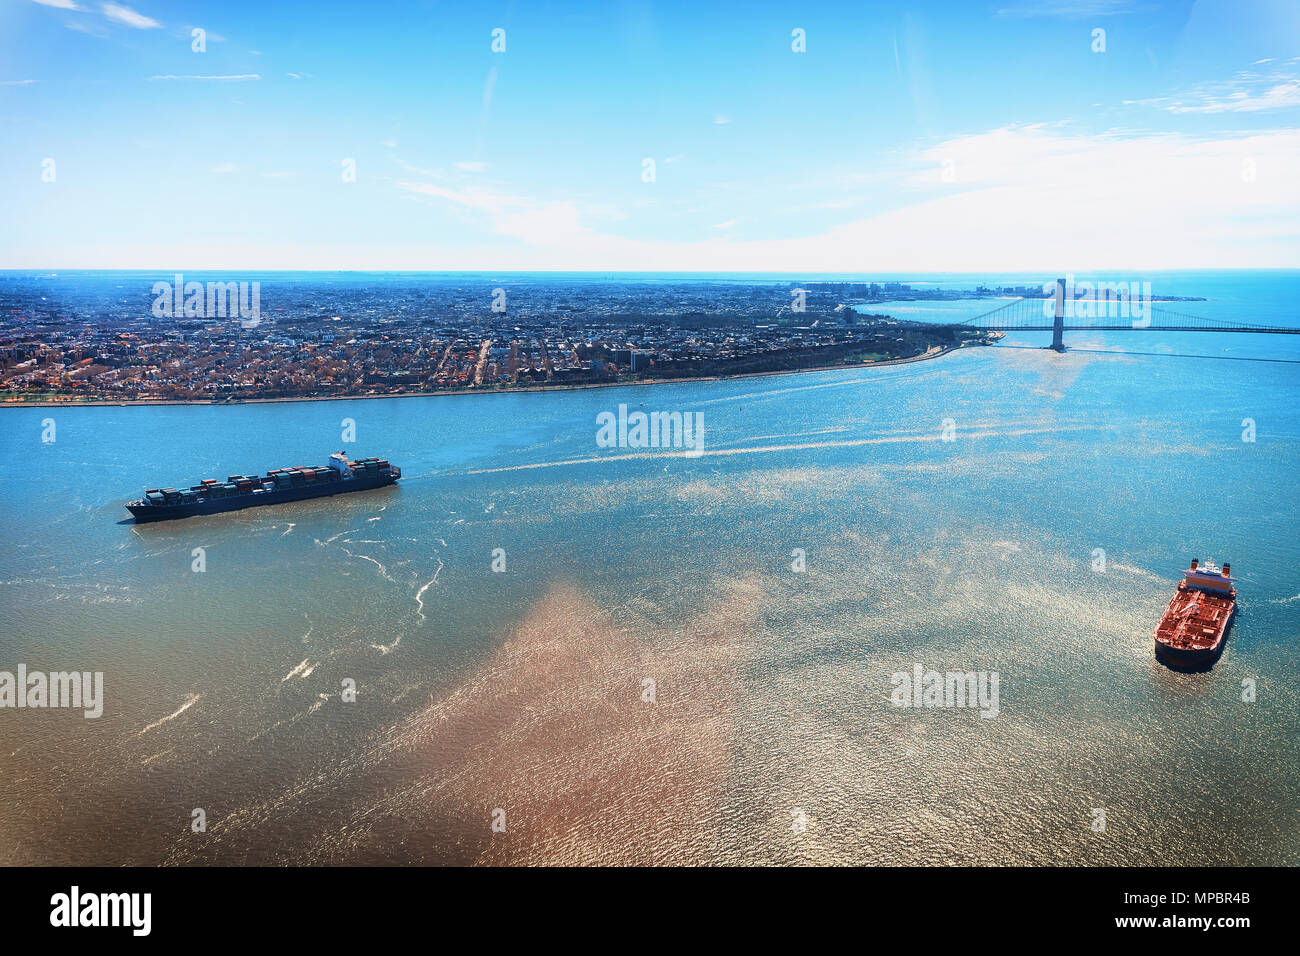 Aerial view on Containers Vessel and Manhattan Bridge structure with New York skyline in the morning over east Hudson River, New York City, USA Stock Photo